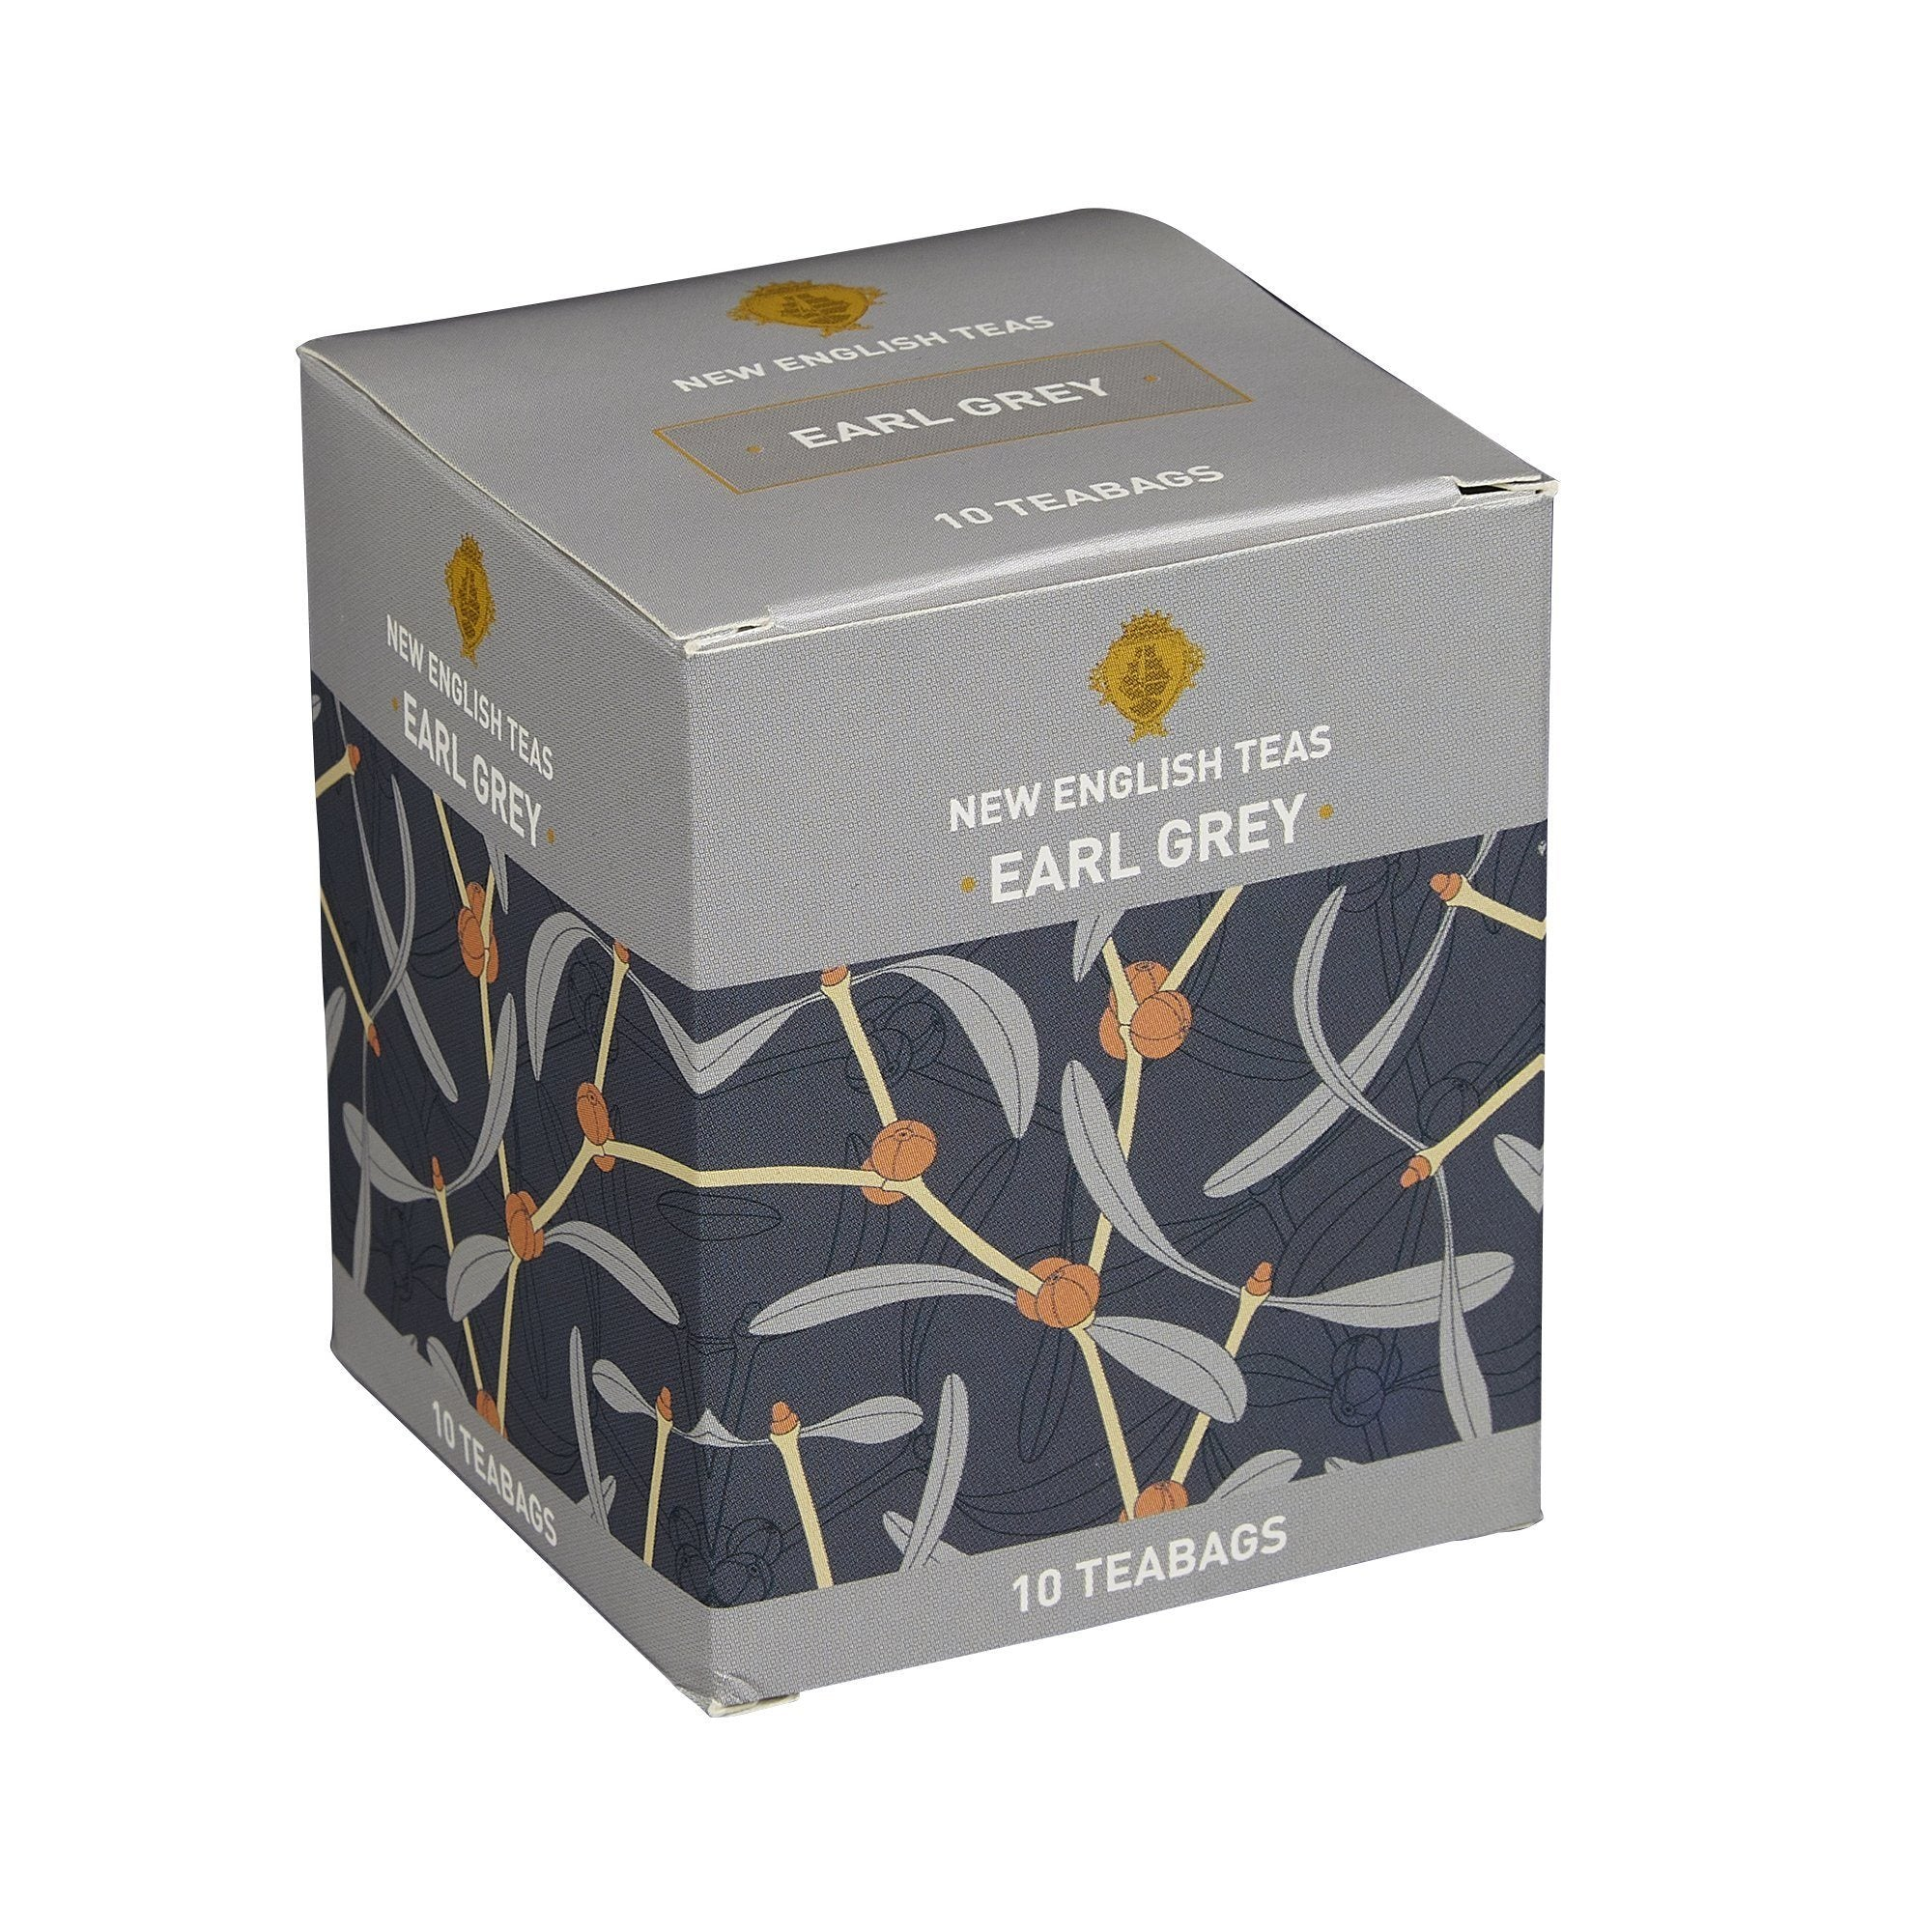 Earl Grey Tea 10 Individually Wrapped Teabags Black Tea New English Teas